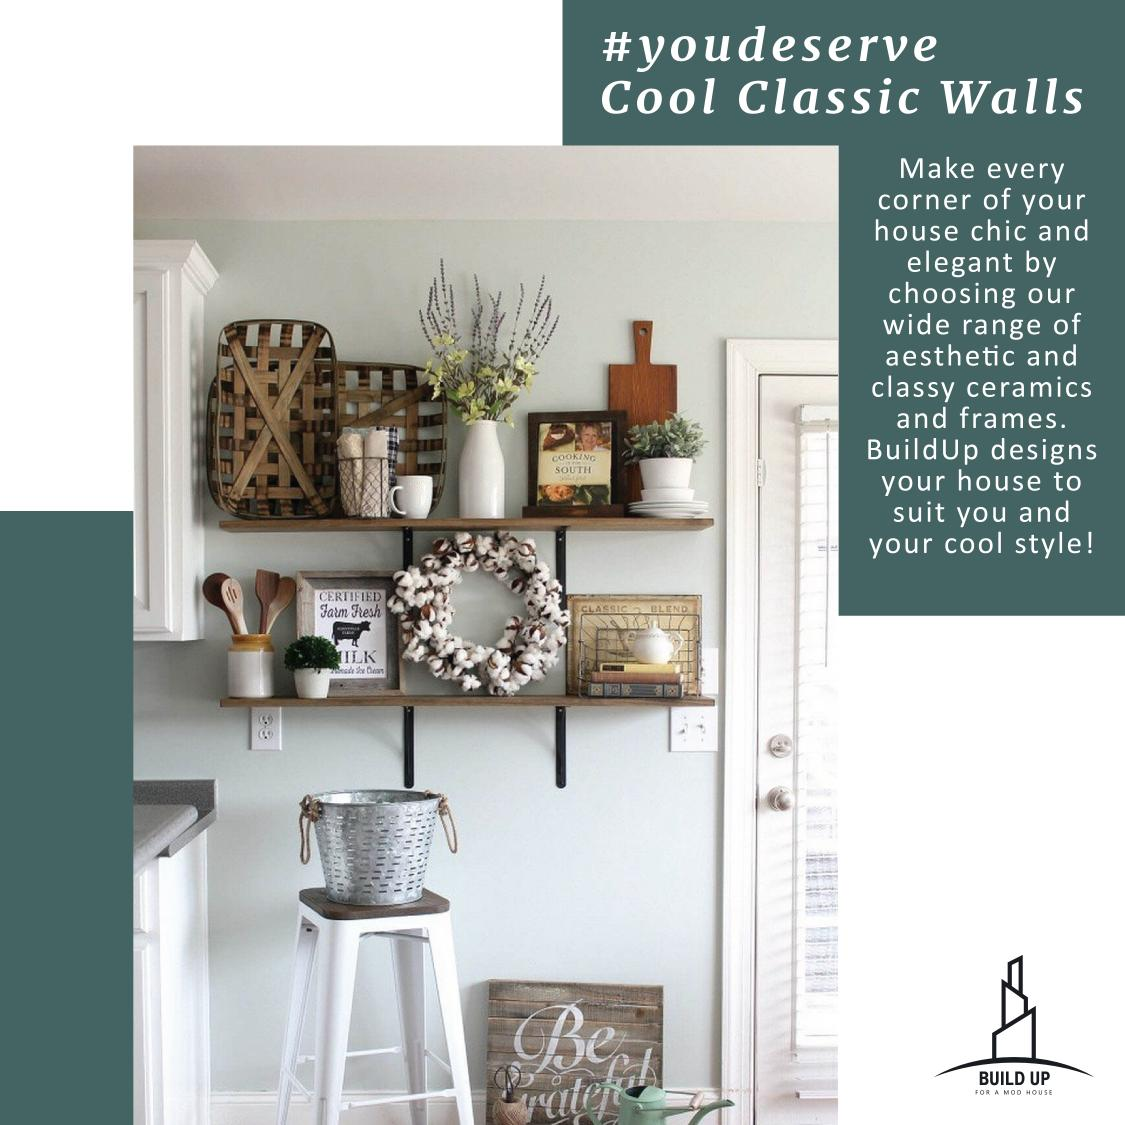 Join us in our new journey #youdeserve and get the perfect look  to your wall by mailing us on hello@buildup.in  deserve every look you want!! #ceramic #walls #frames #colours #classy  #bliss #perfectlook #youdeserve #campaign #joinus #buildupwithus #buildup  #interiordesignpic.twitter.com/aNoJWpUVxI